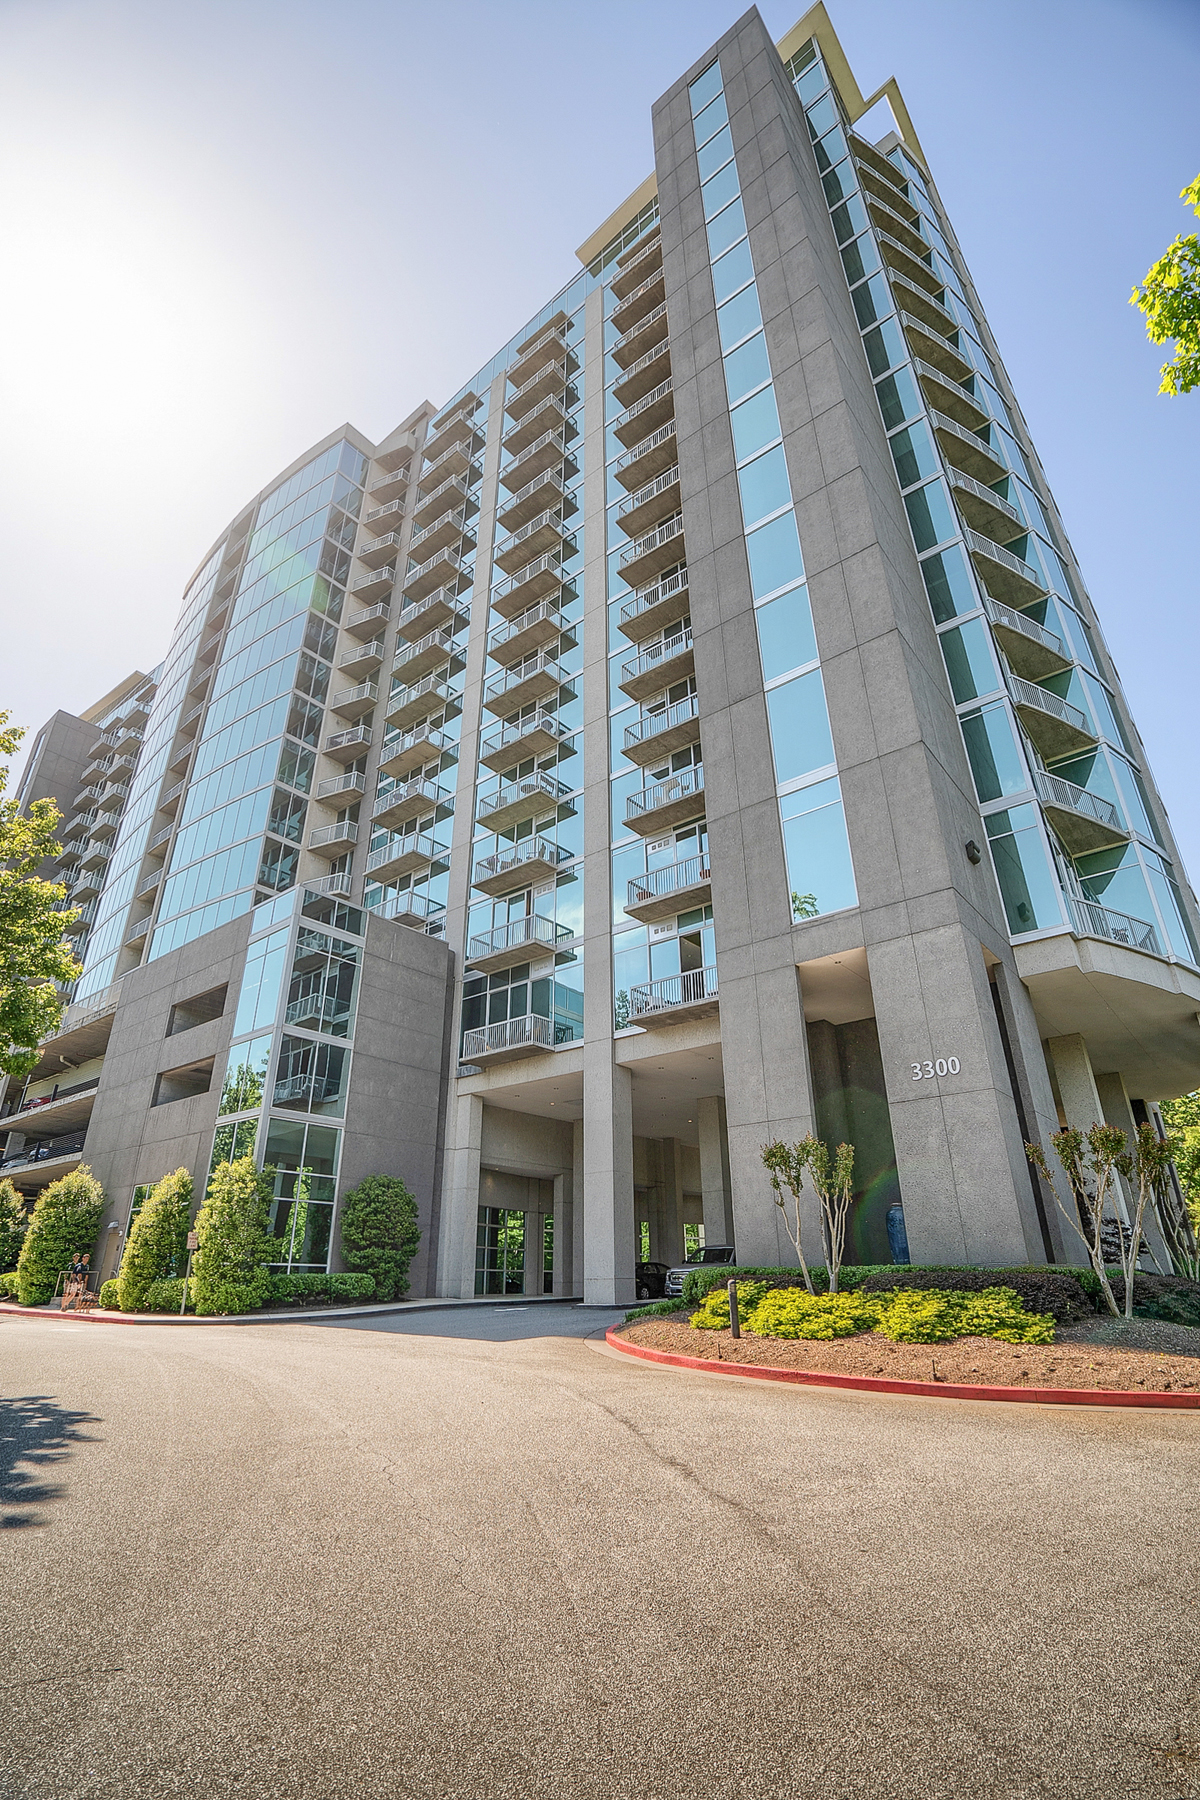 Condominium for Sale at Sought After One Bedroom Unit In Horizon With Private Balcony 3300 Windy Ridge Pkwy 604 Atlanta, Georgia 30339 United States